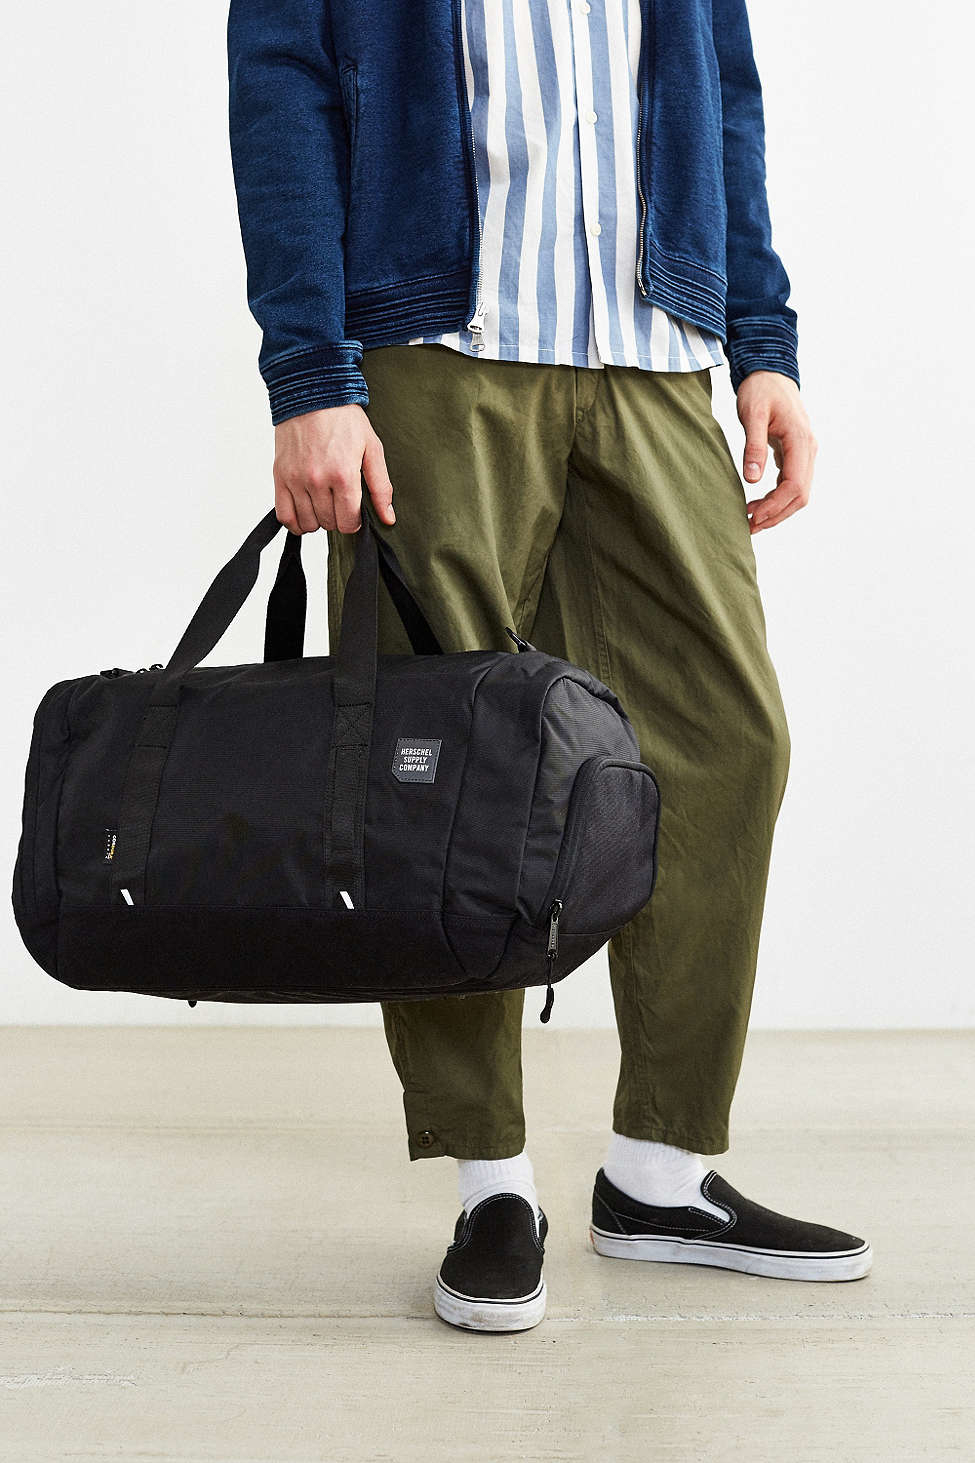 fdd997efaa Lyst - Herschel Supply Co. Trail Gorge Weekender Duffel Bag in Black ...